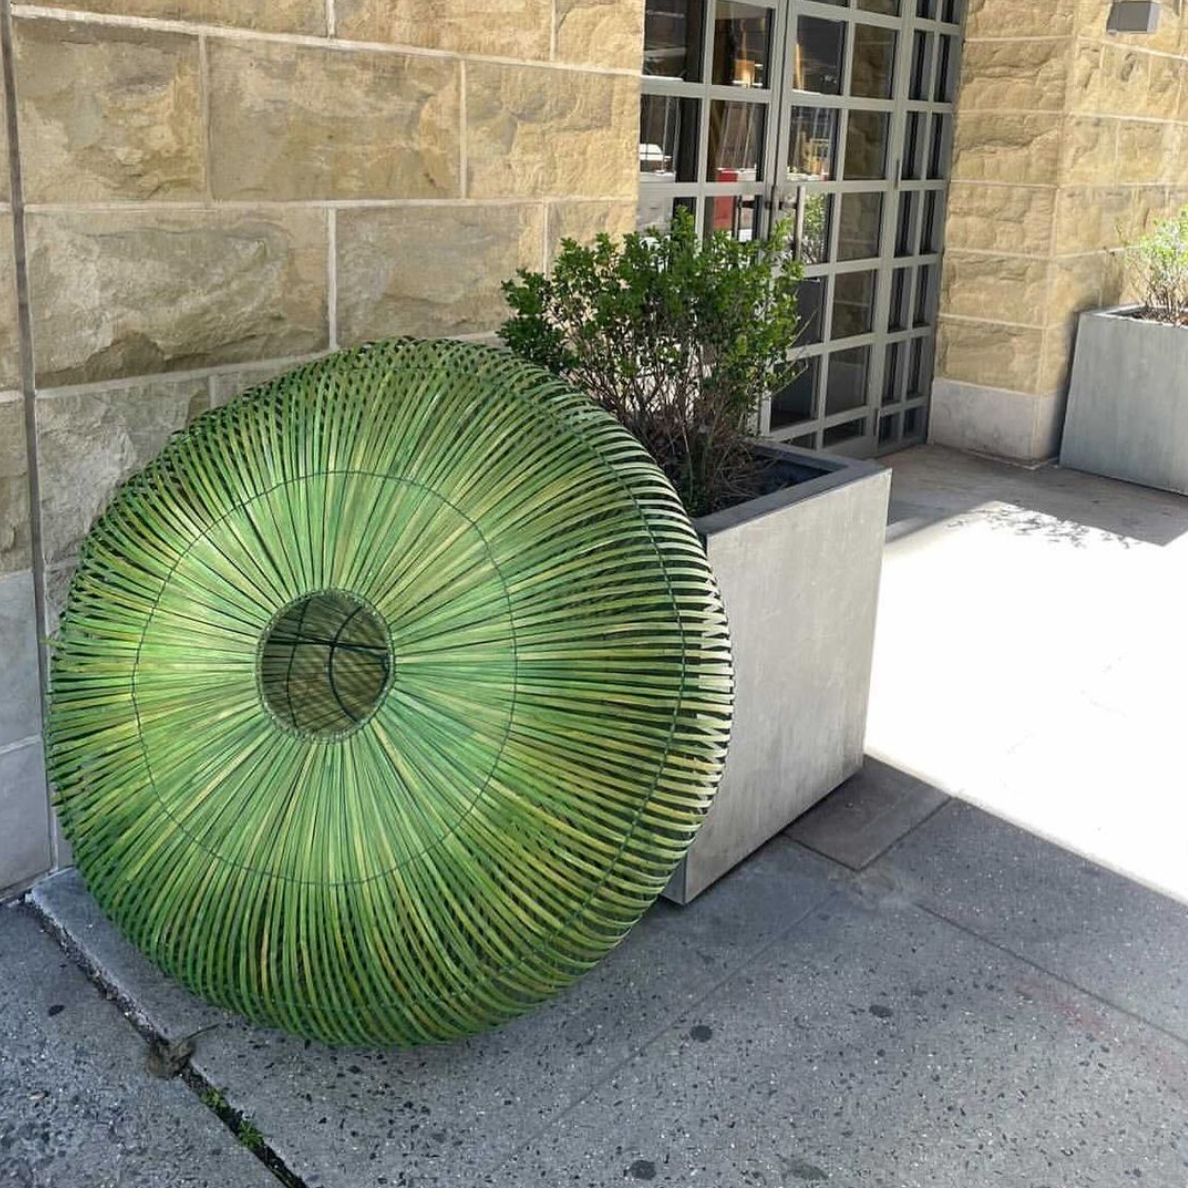 Home decor item pictured on a curbside in New York City